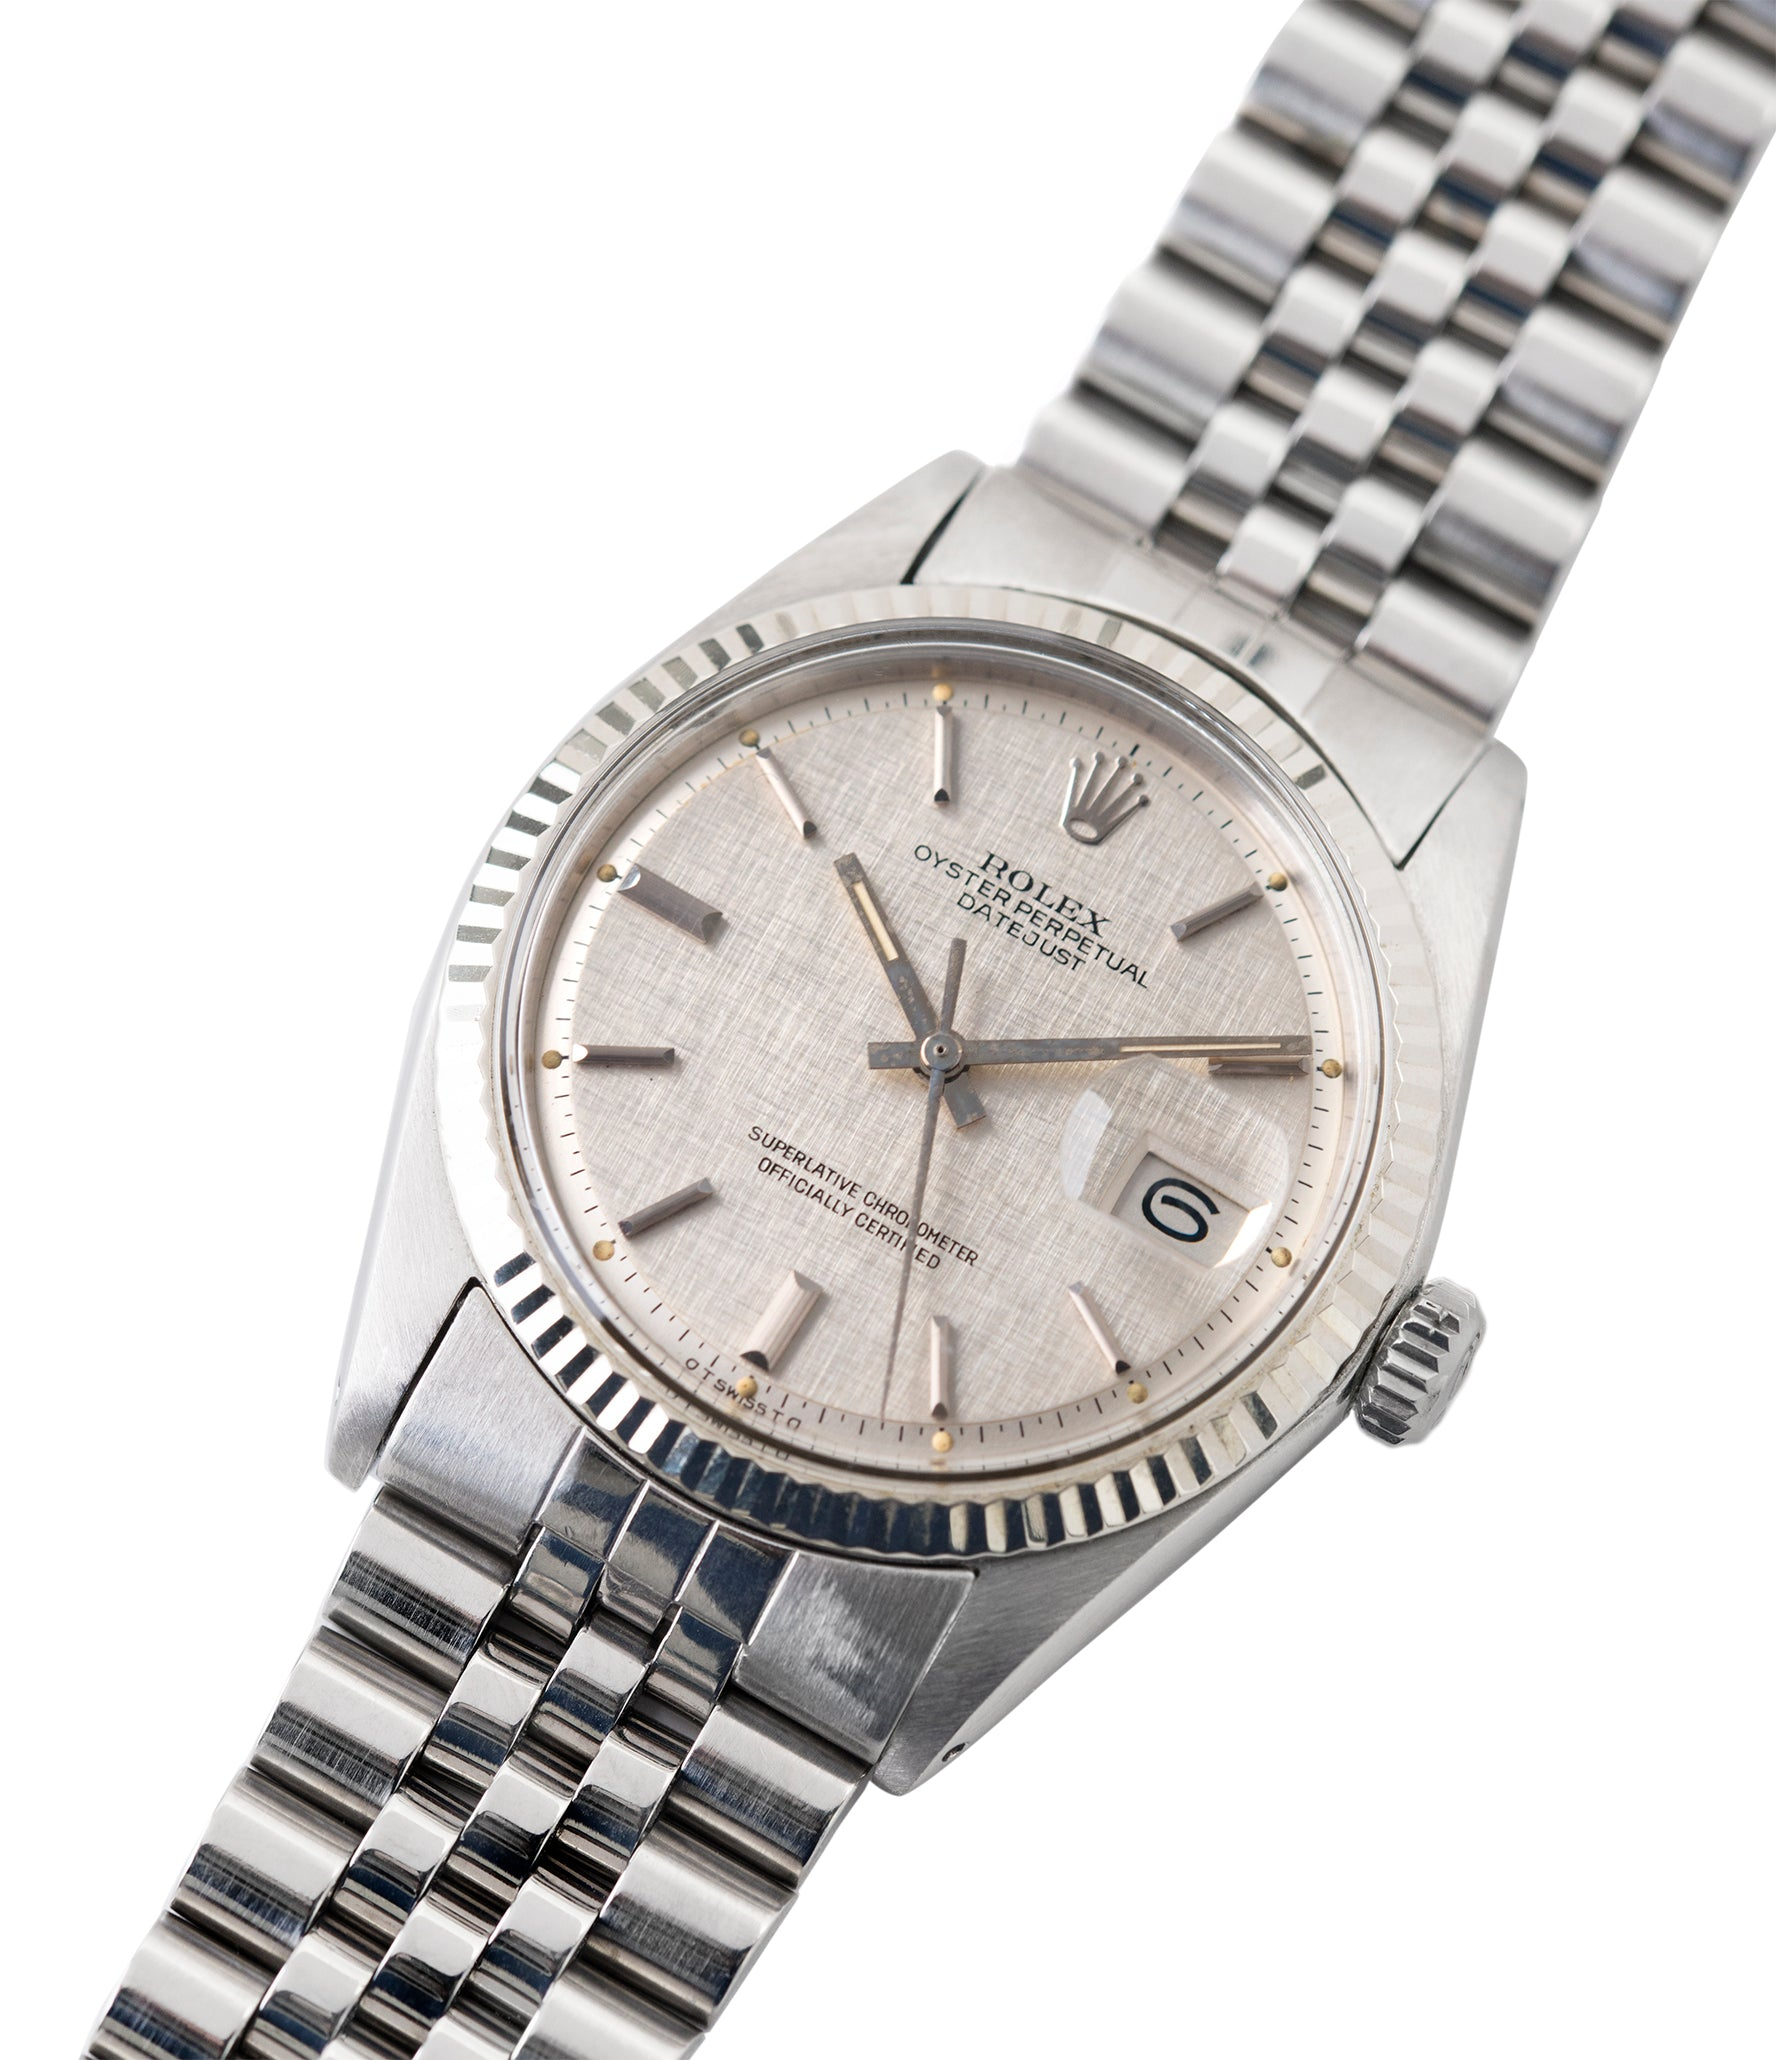 vintage Rolex Datejust 1601 linen dial Oyster Perpetual automatic steel sport dress watch for sale online at A Collected Man London UK specialist rare vintage watches